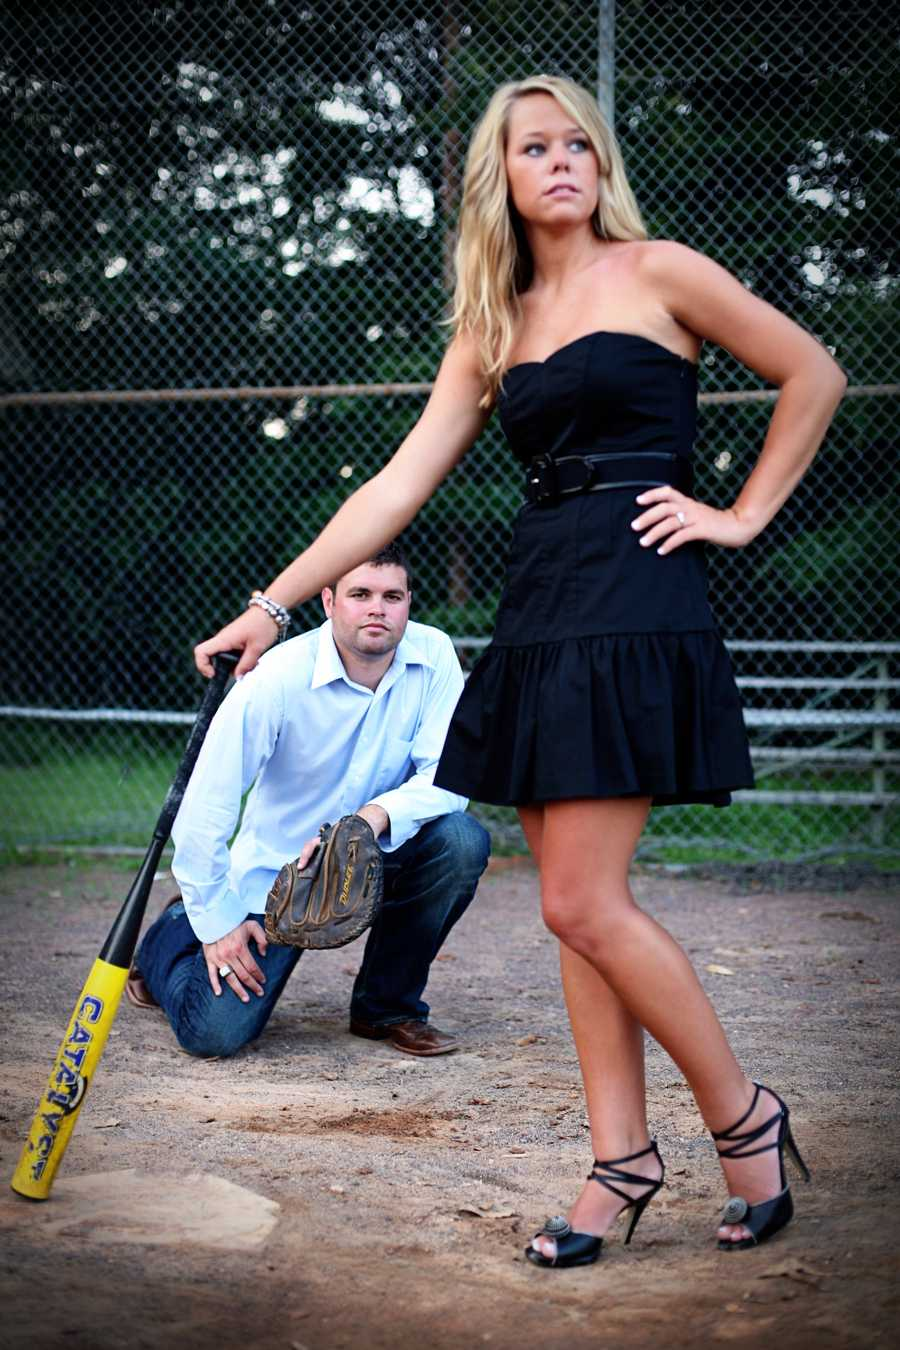 These baseball fans make a great pose for their engagement photo session. Great photo for their Save-The-Date cards.